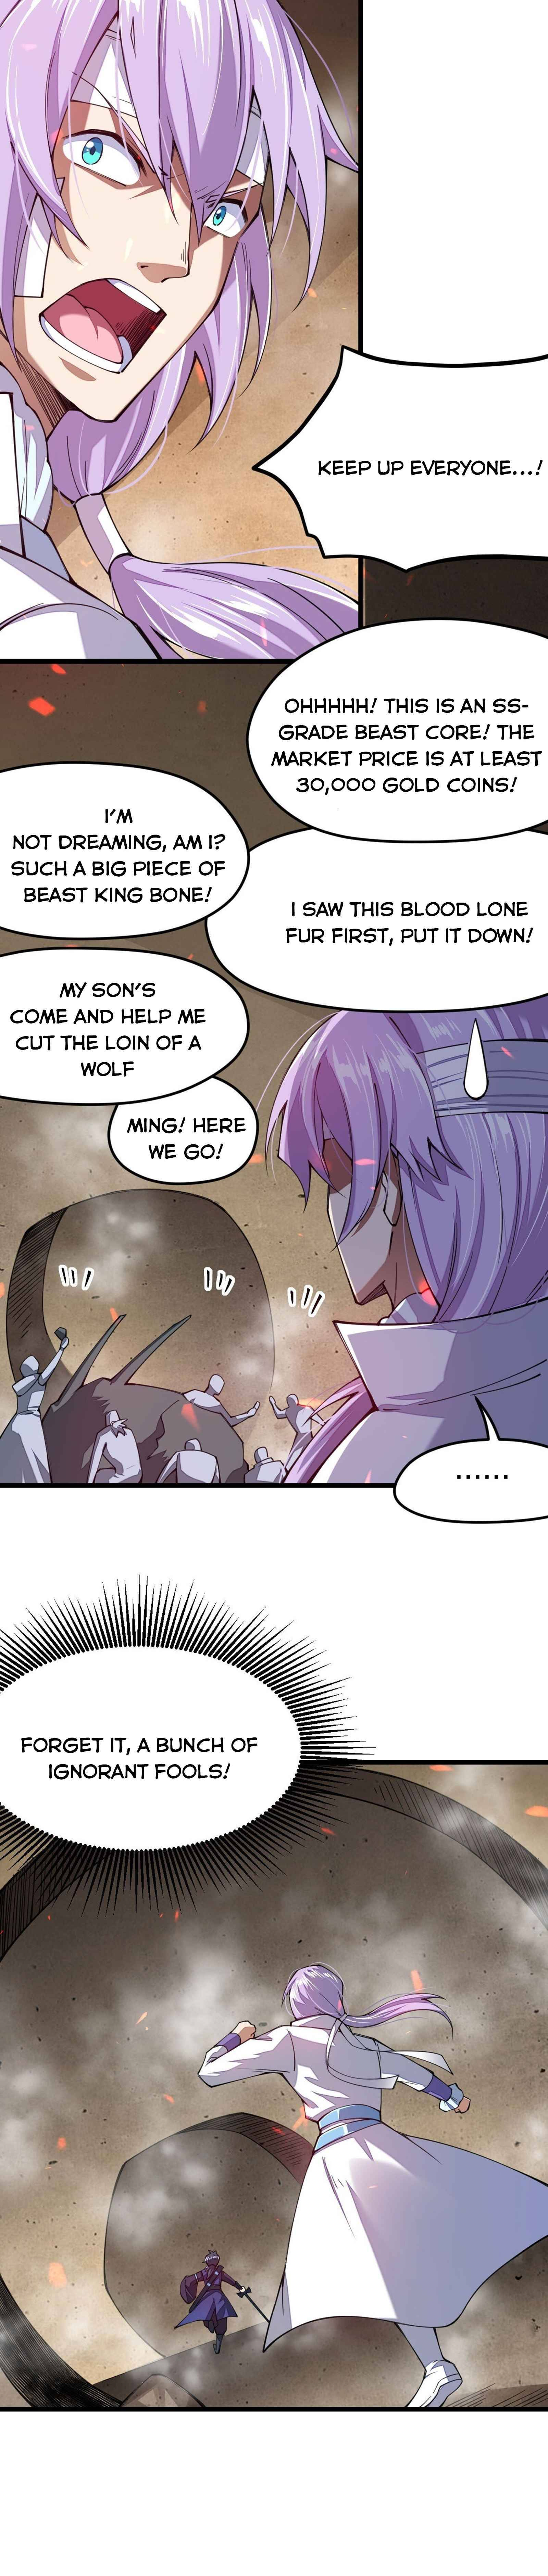 Sword God'S Life Is Not That Boring - chapter 27 - #2